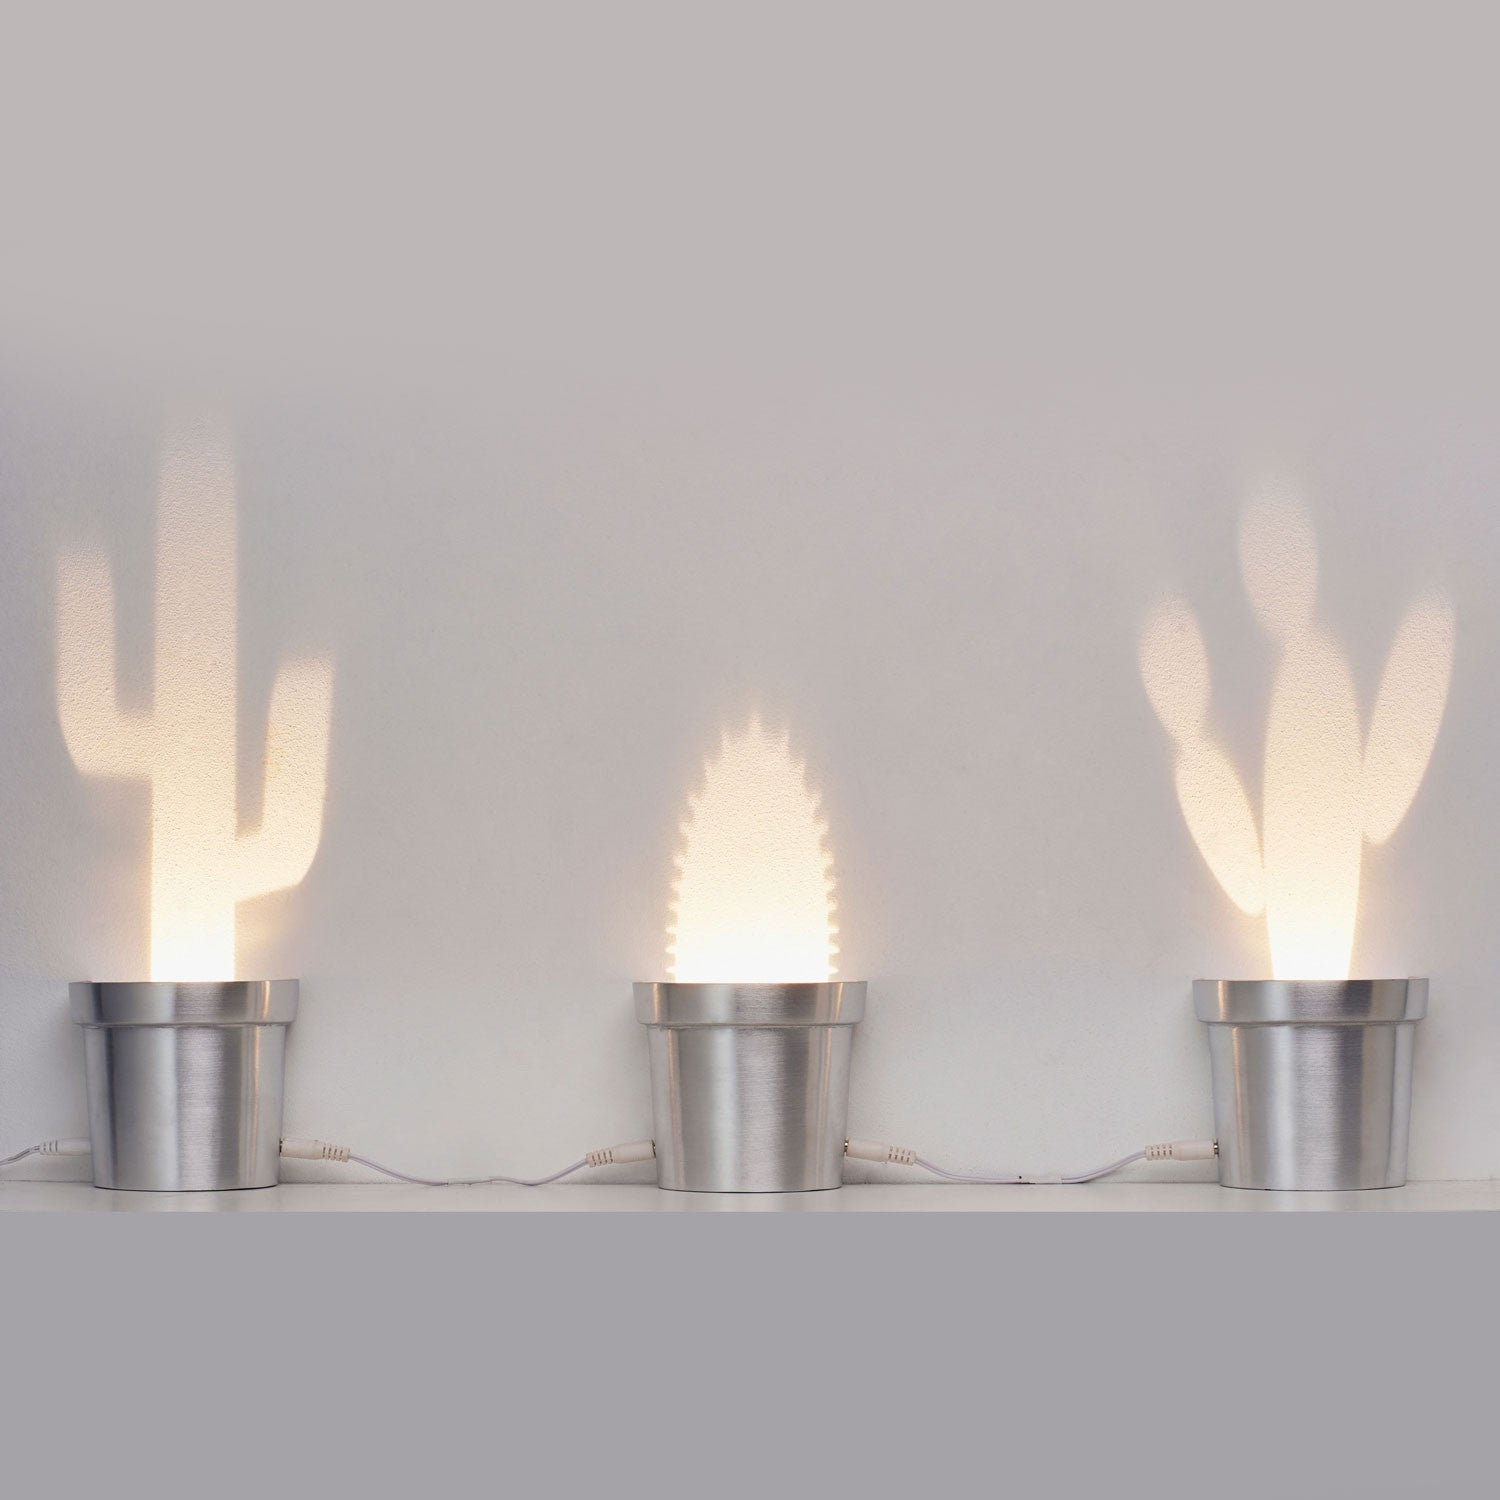 A Set of Three Cactus Lamps in Three Different Shapes Made Aluminum